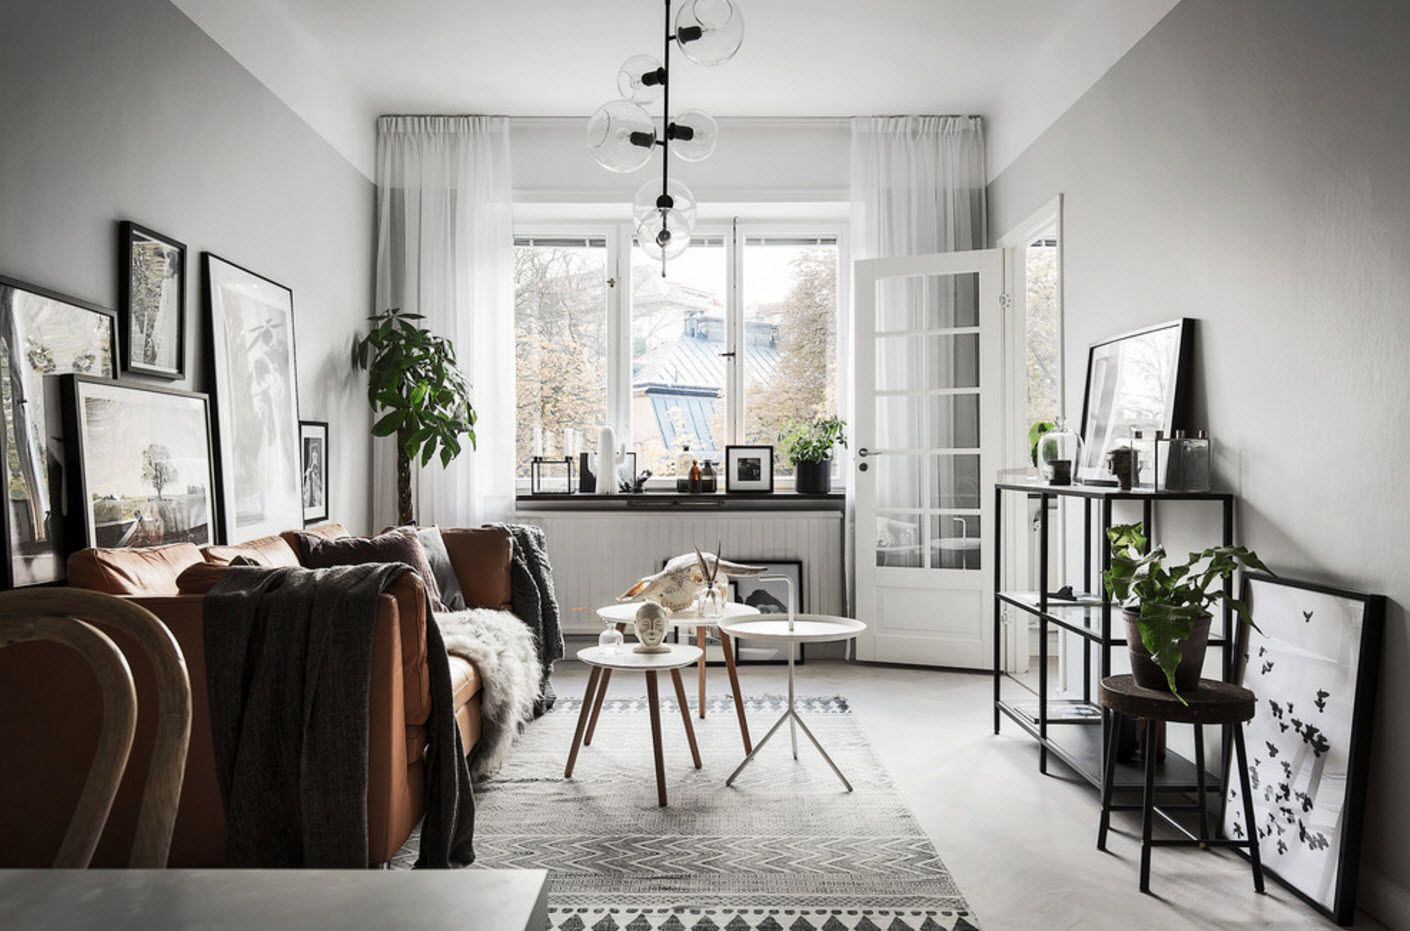 gray pastel palette to set off the natural tint of vegetation in the room